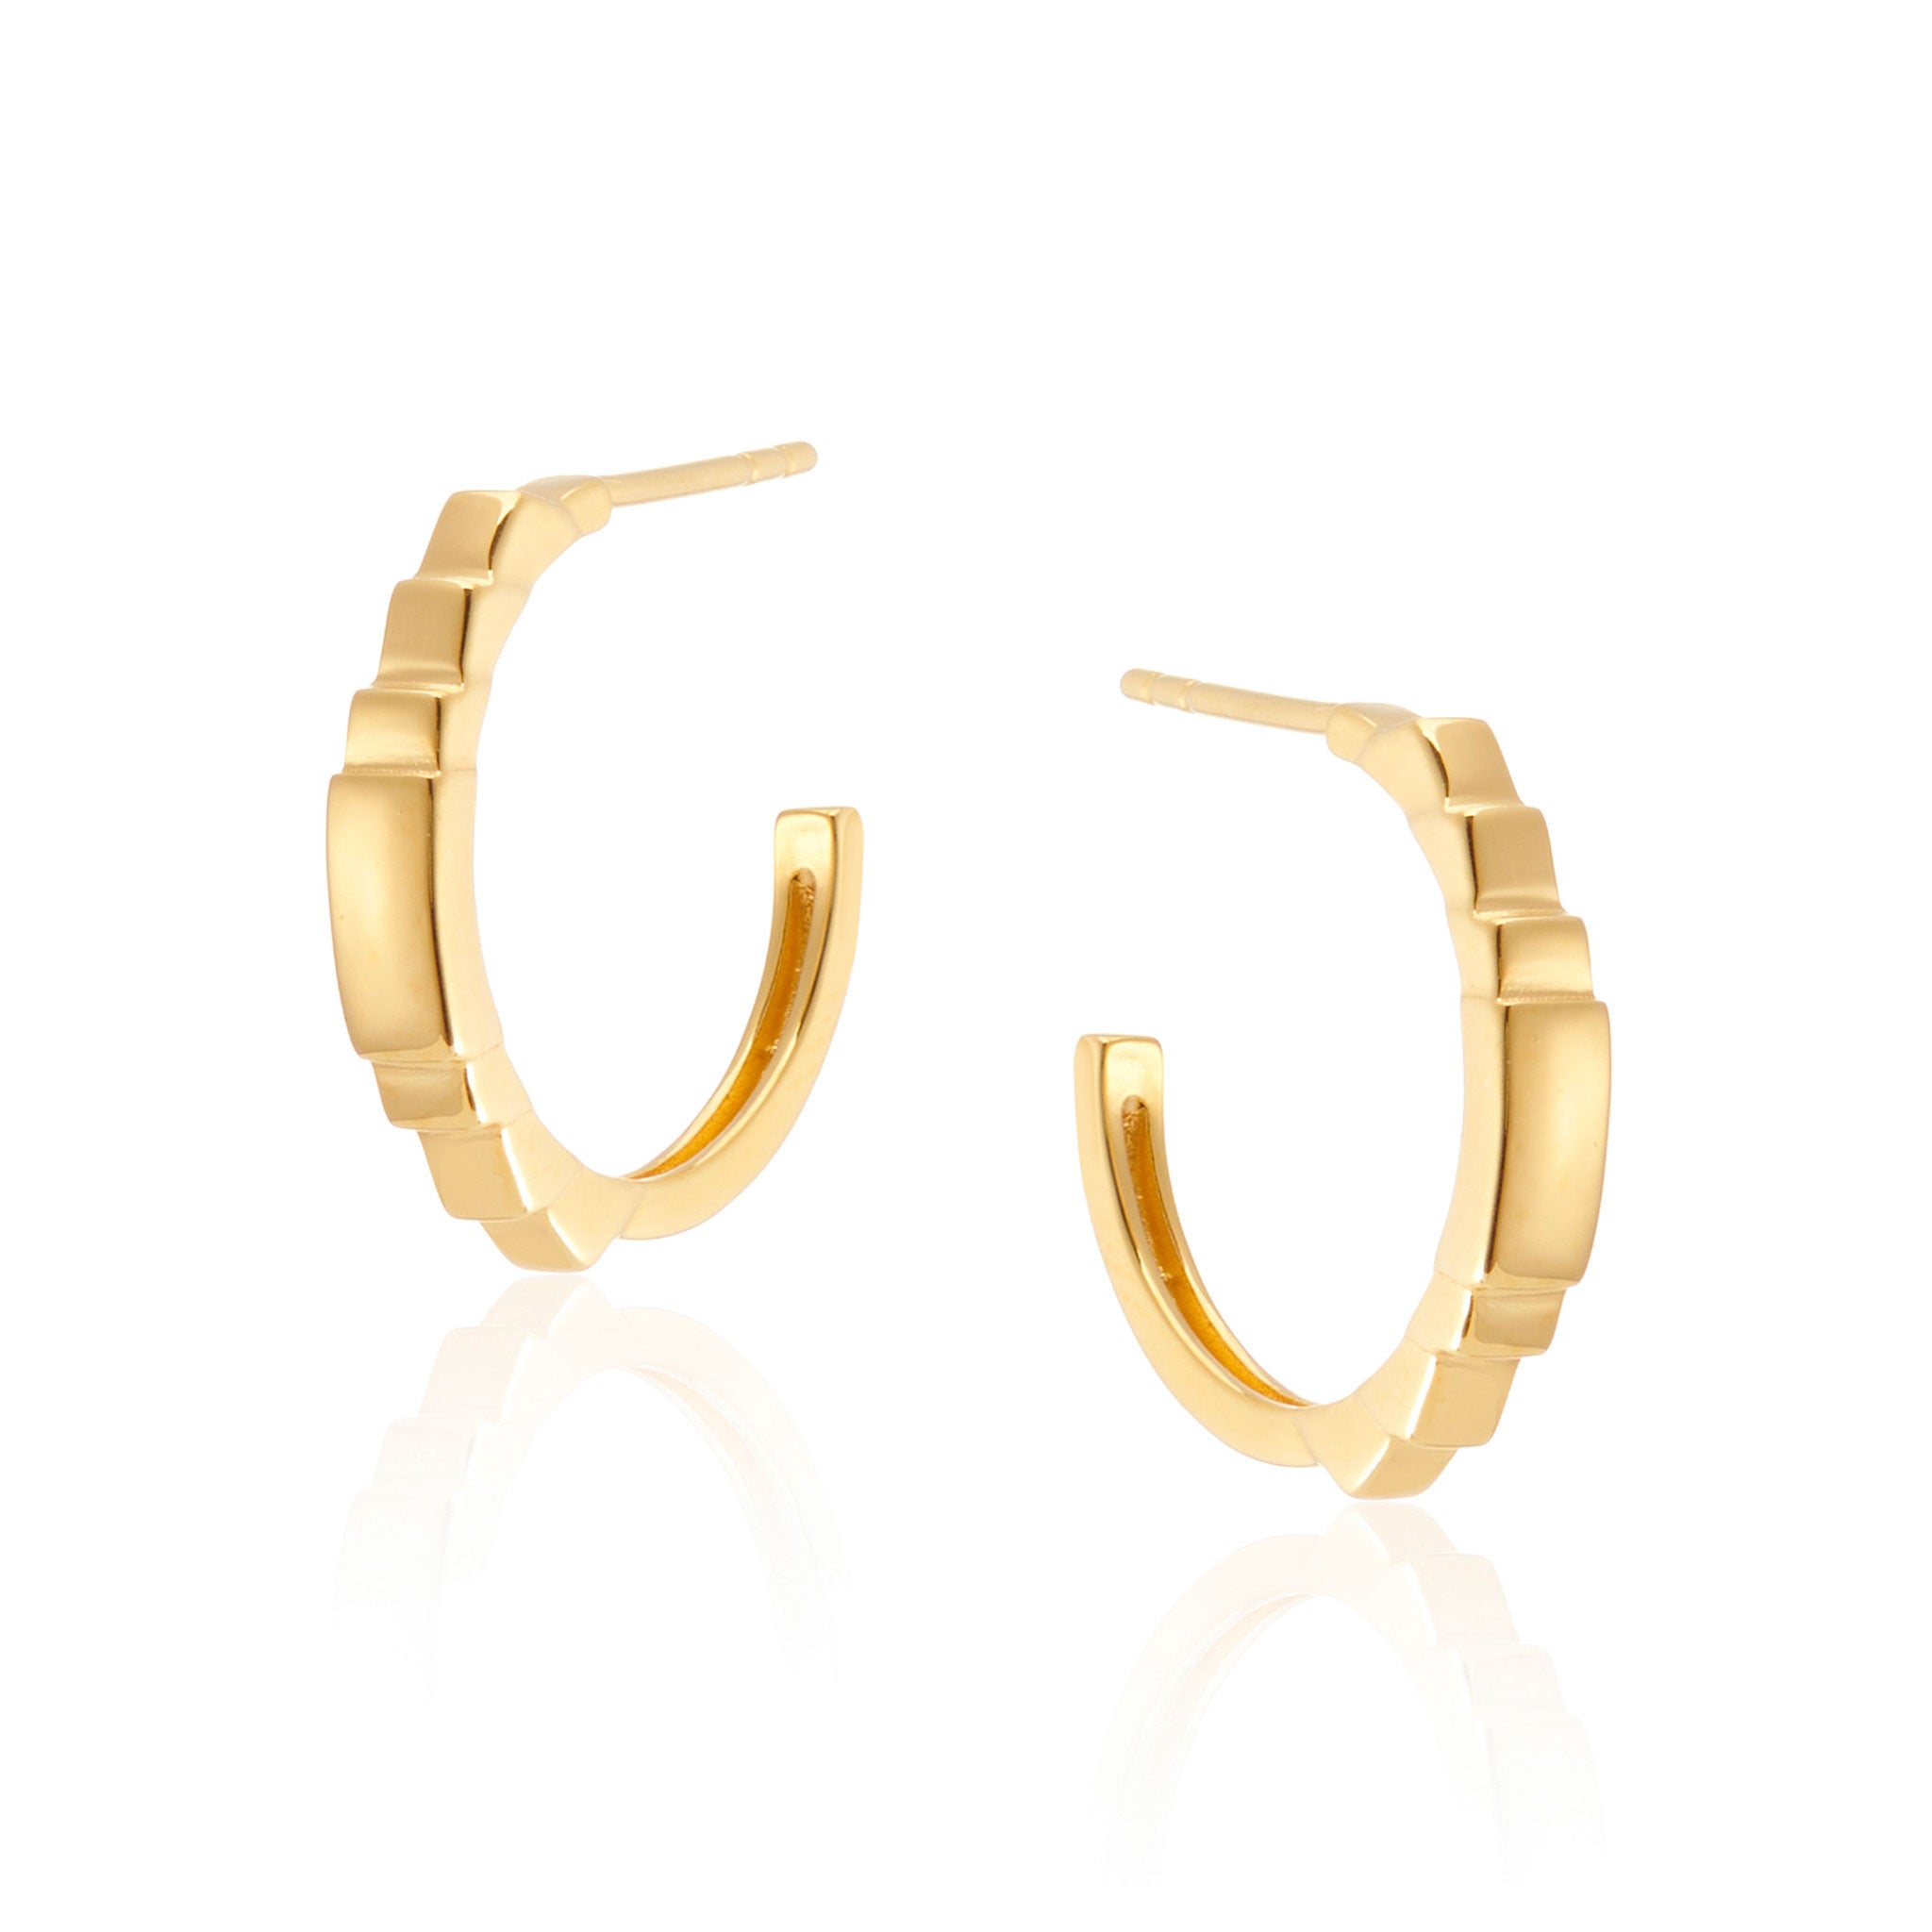 Tyra Small Hoop Earrings in Gold